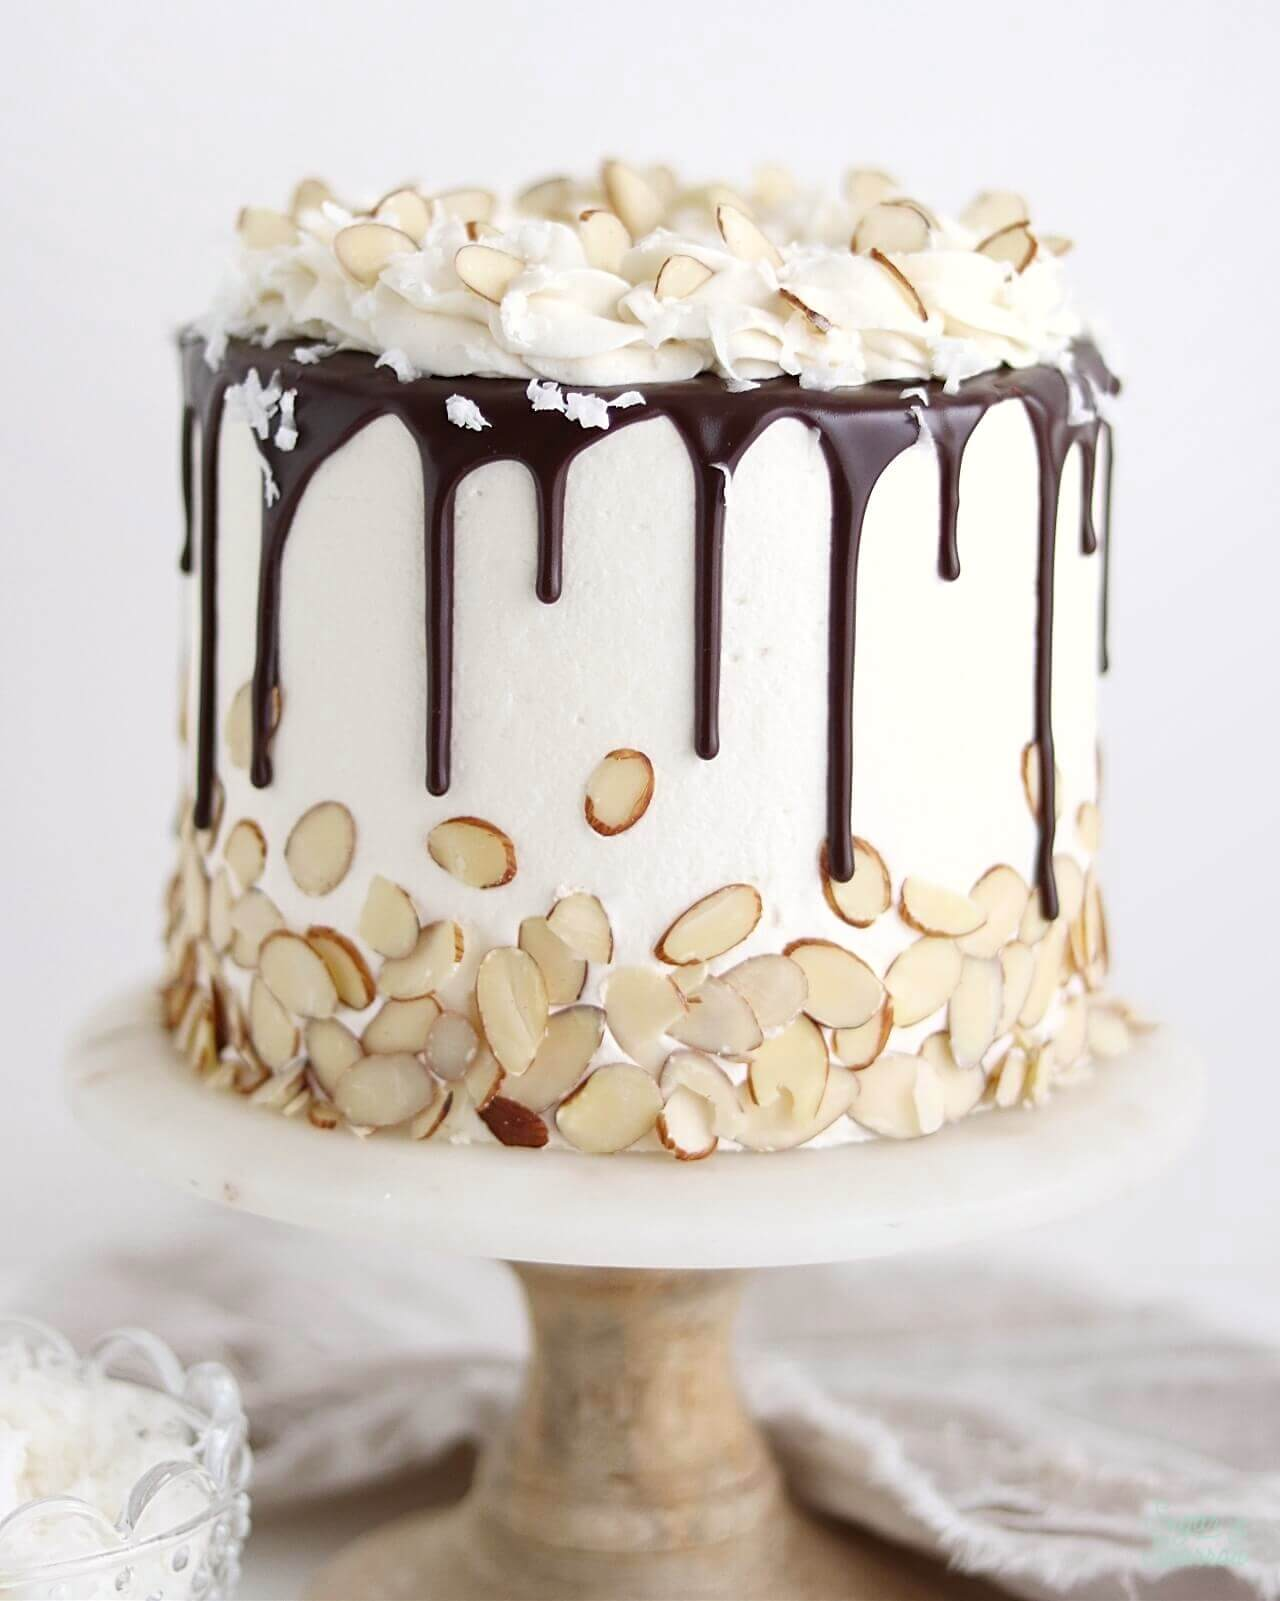 Almond Joy Cake Recipe by Sugar and Sparrow